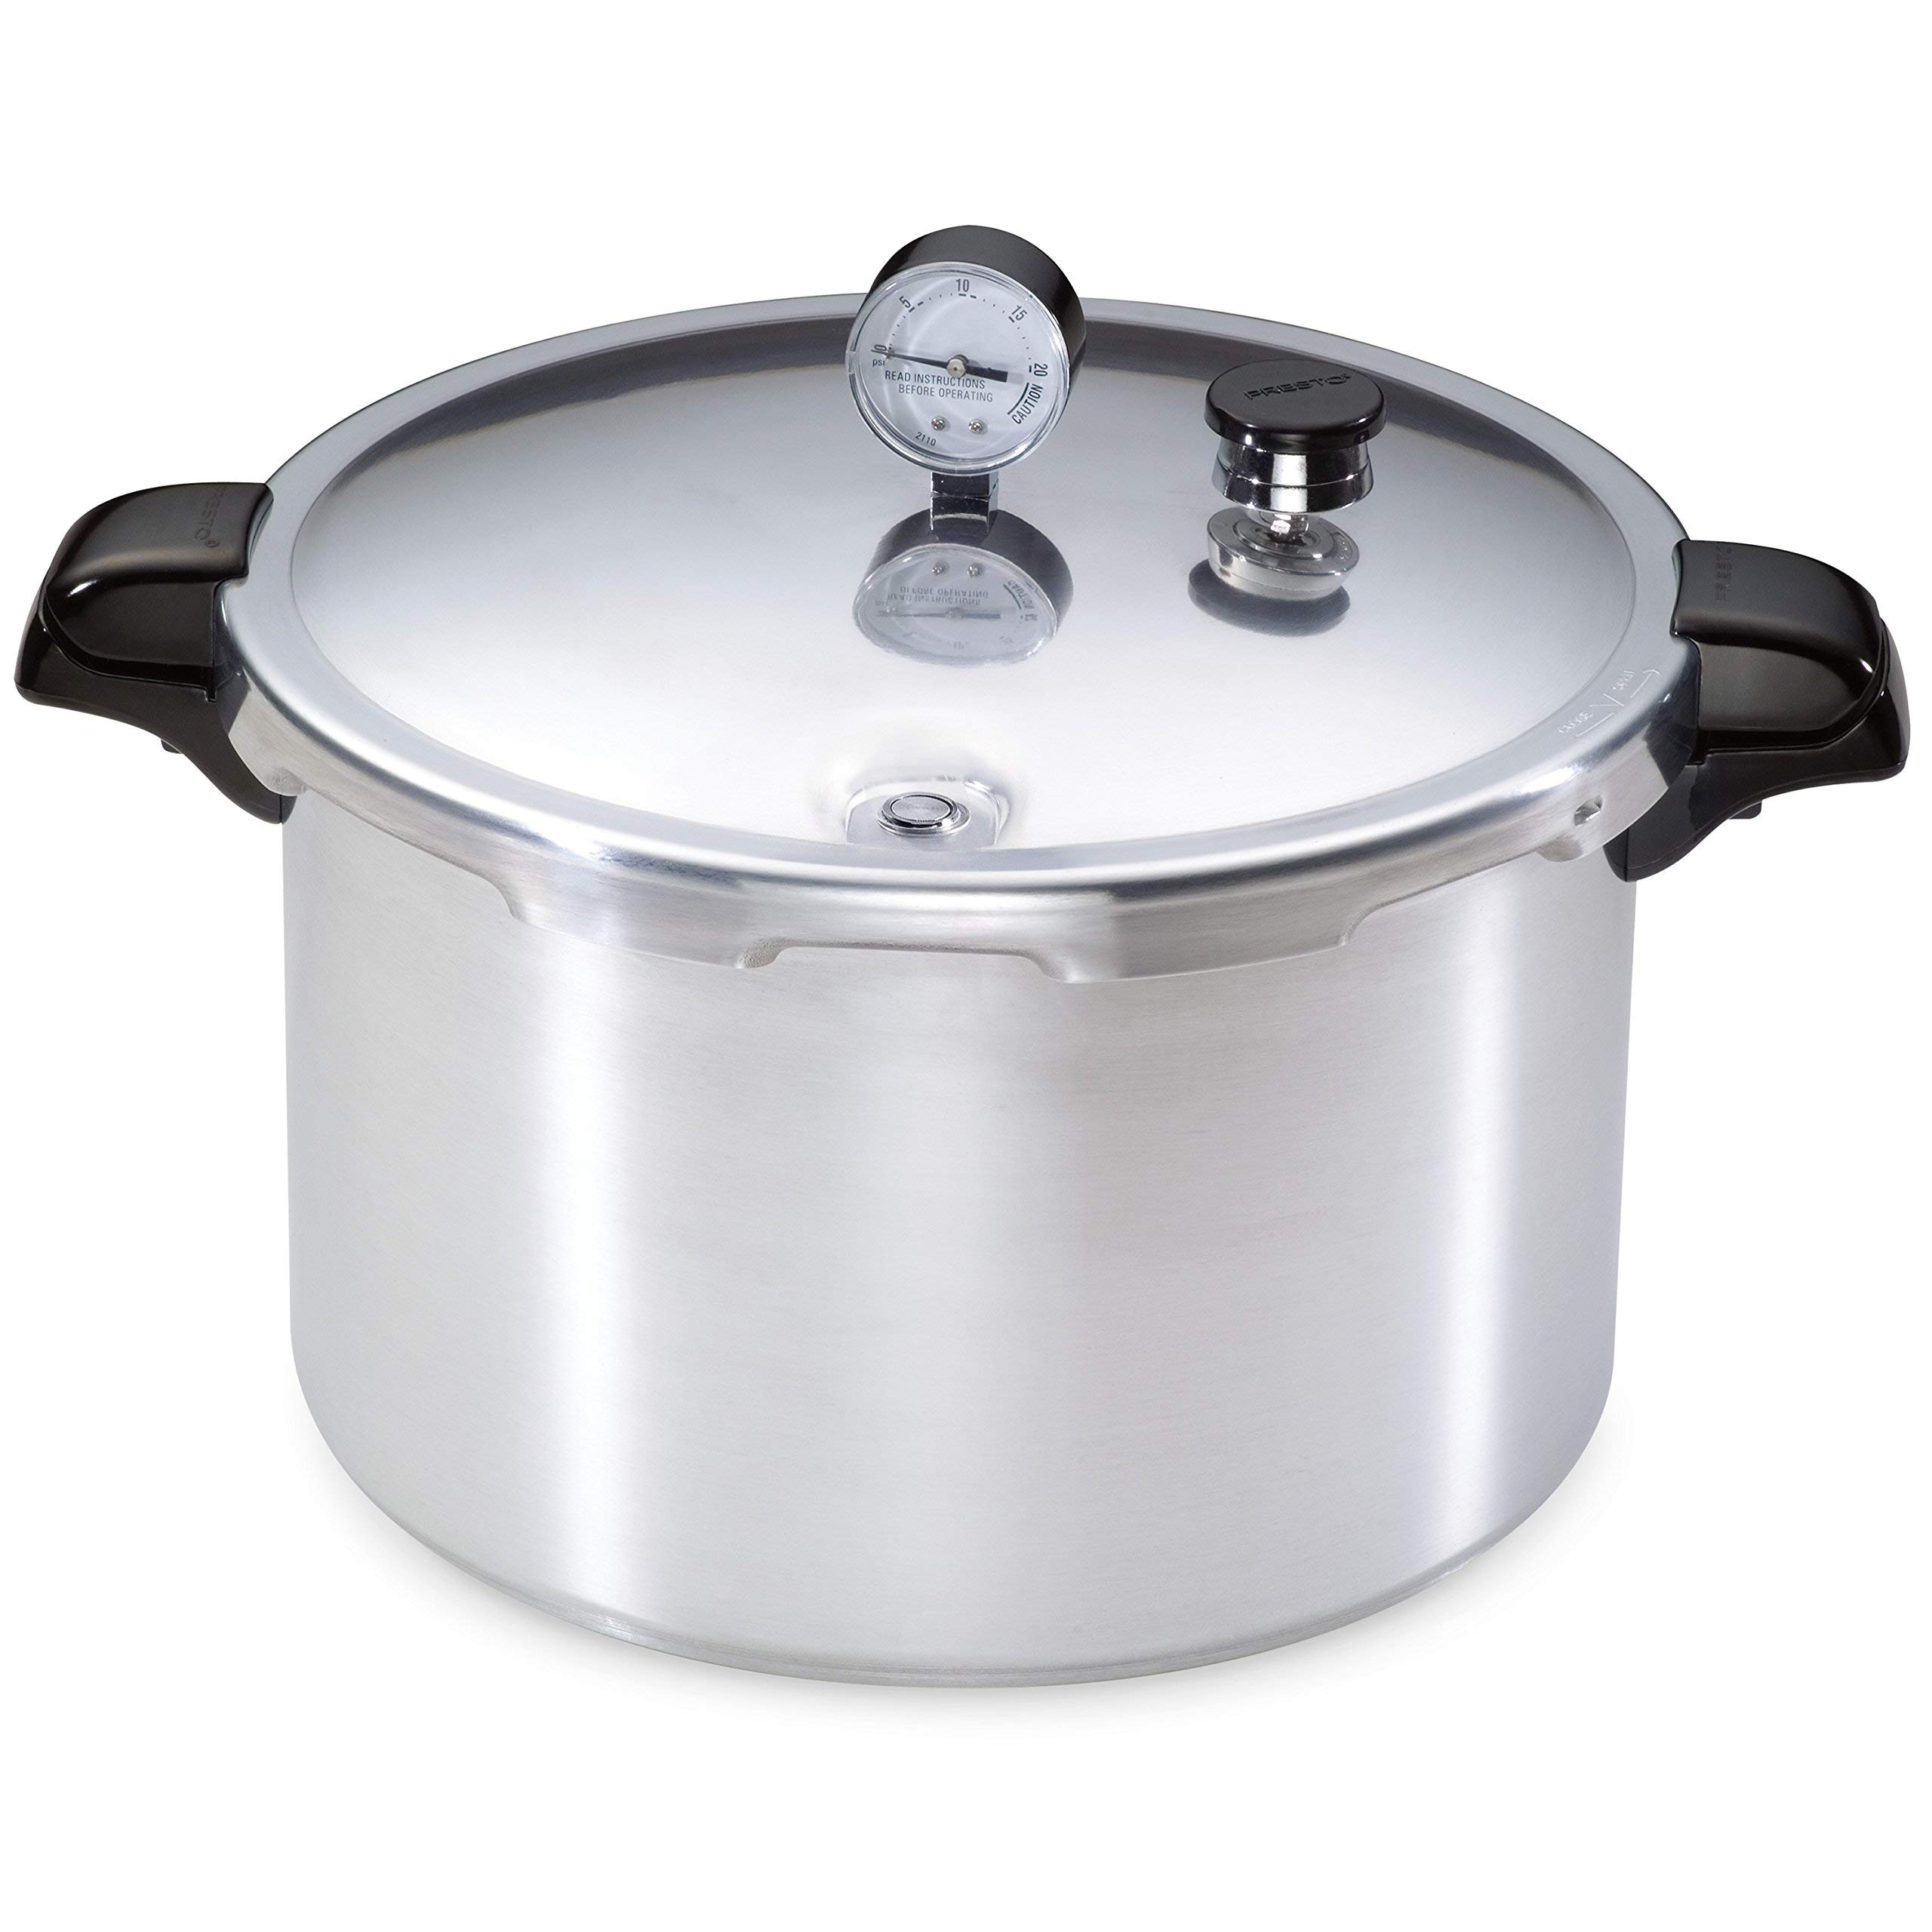 Presto 1755 16-Quart Aluminum Pressure Cooker/Canner (Renewed)